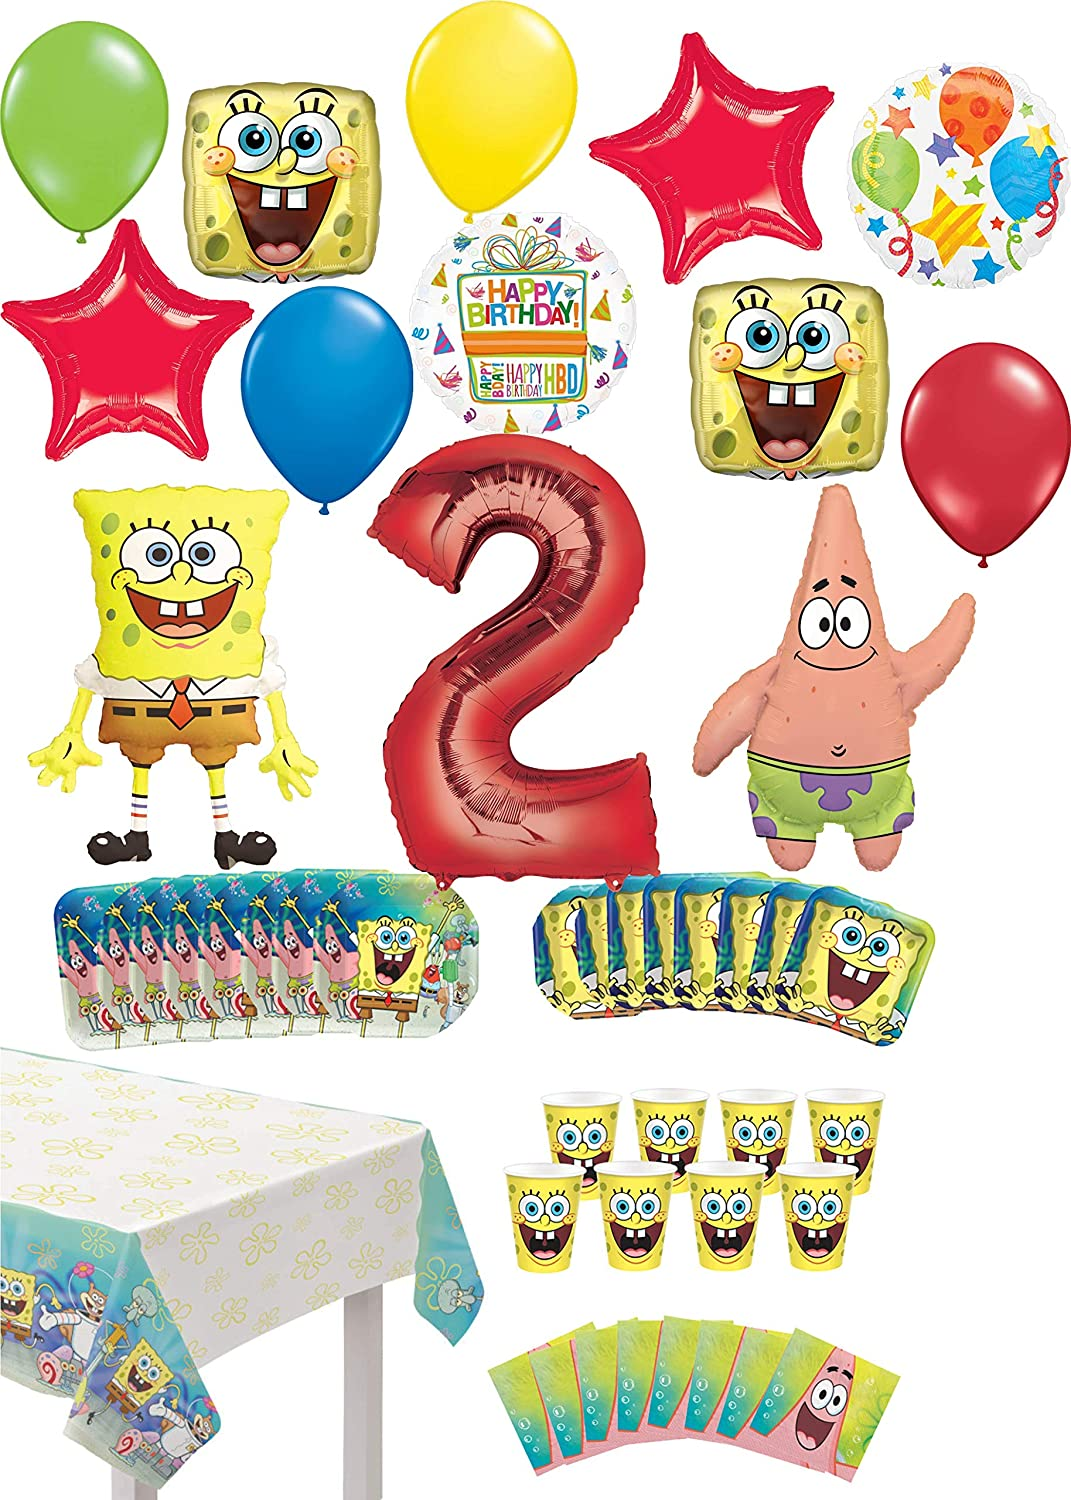 Spongebob Square Pants 2nd Birthday Party Supplies 8 Guest Table Decor and Balloon Bouquet Decorations